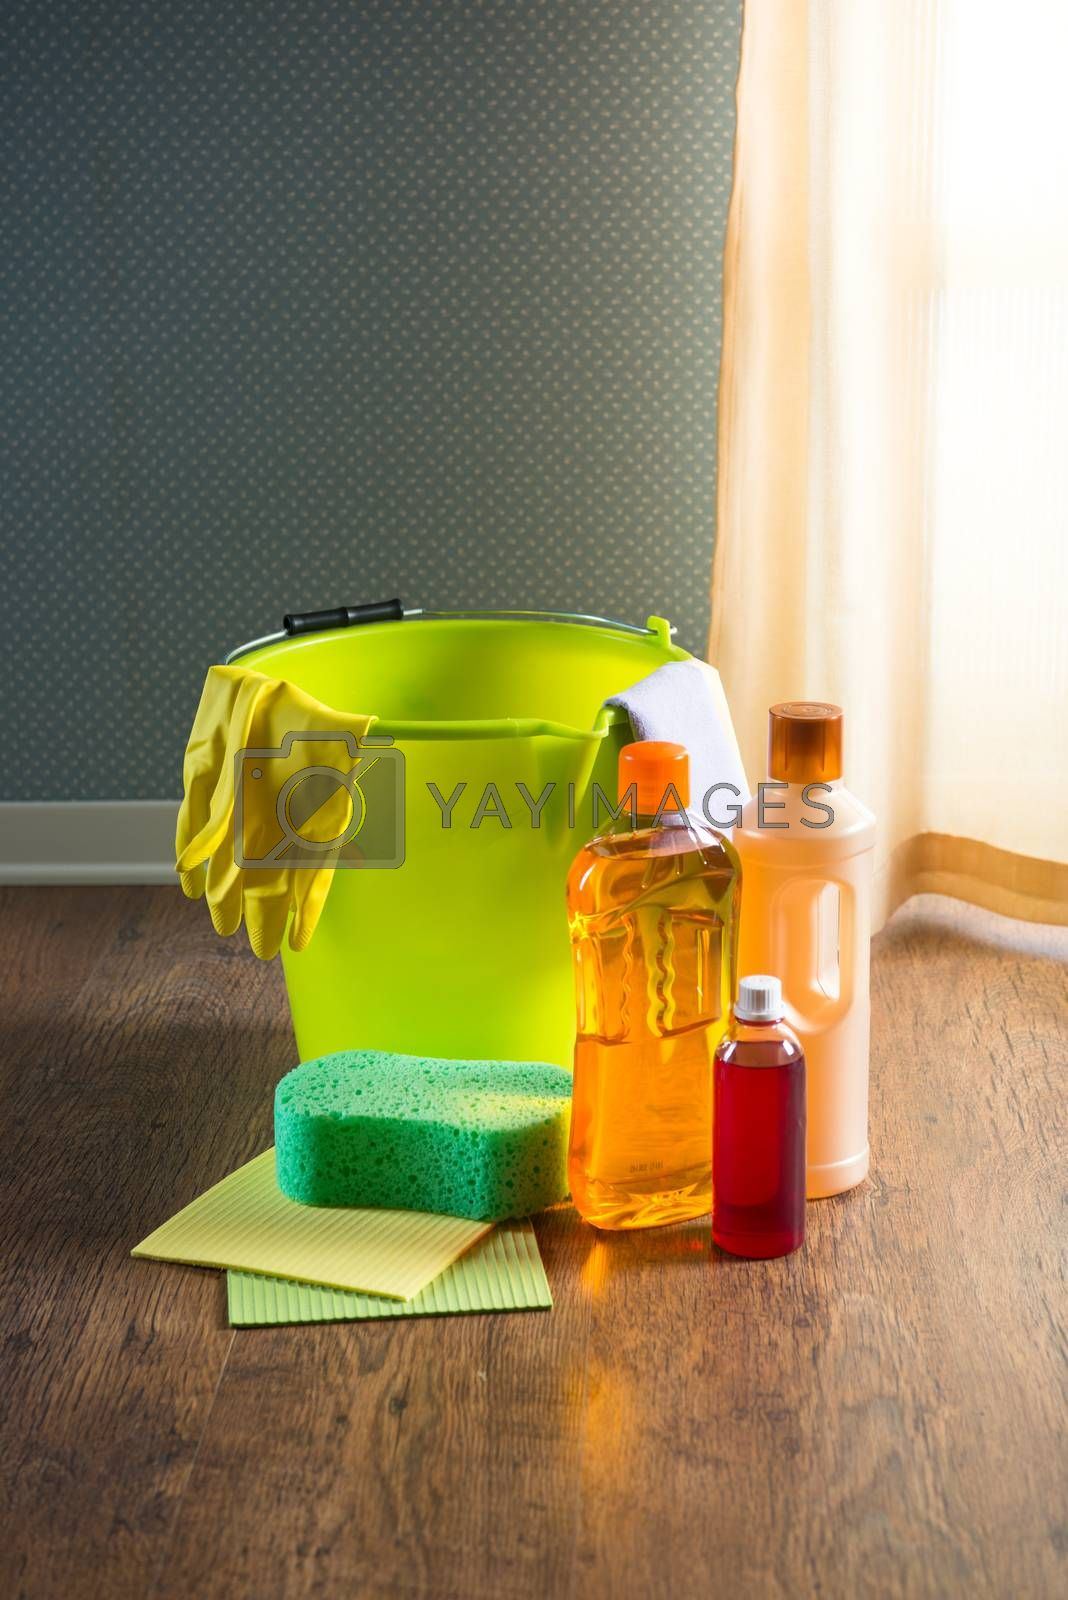 Wood cleaners and detergents on floor with bucket, gloves, cloth and sponges.